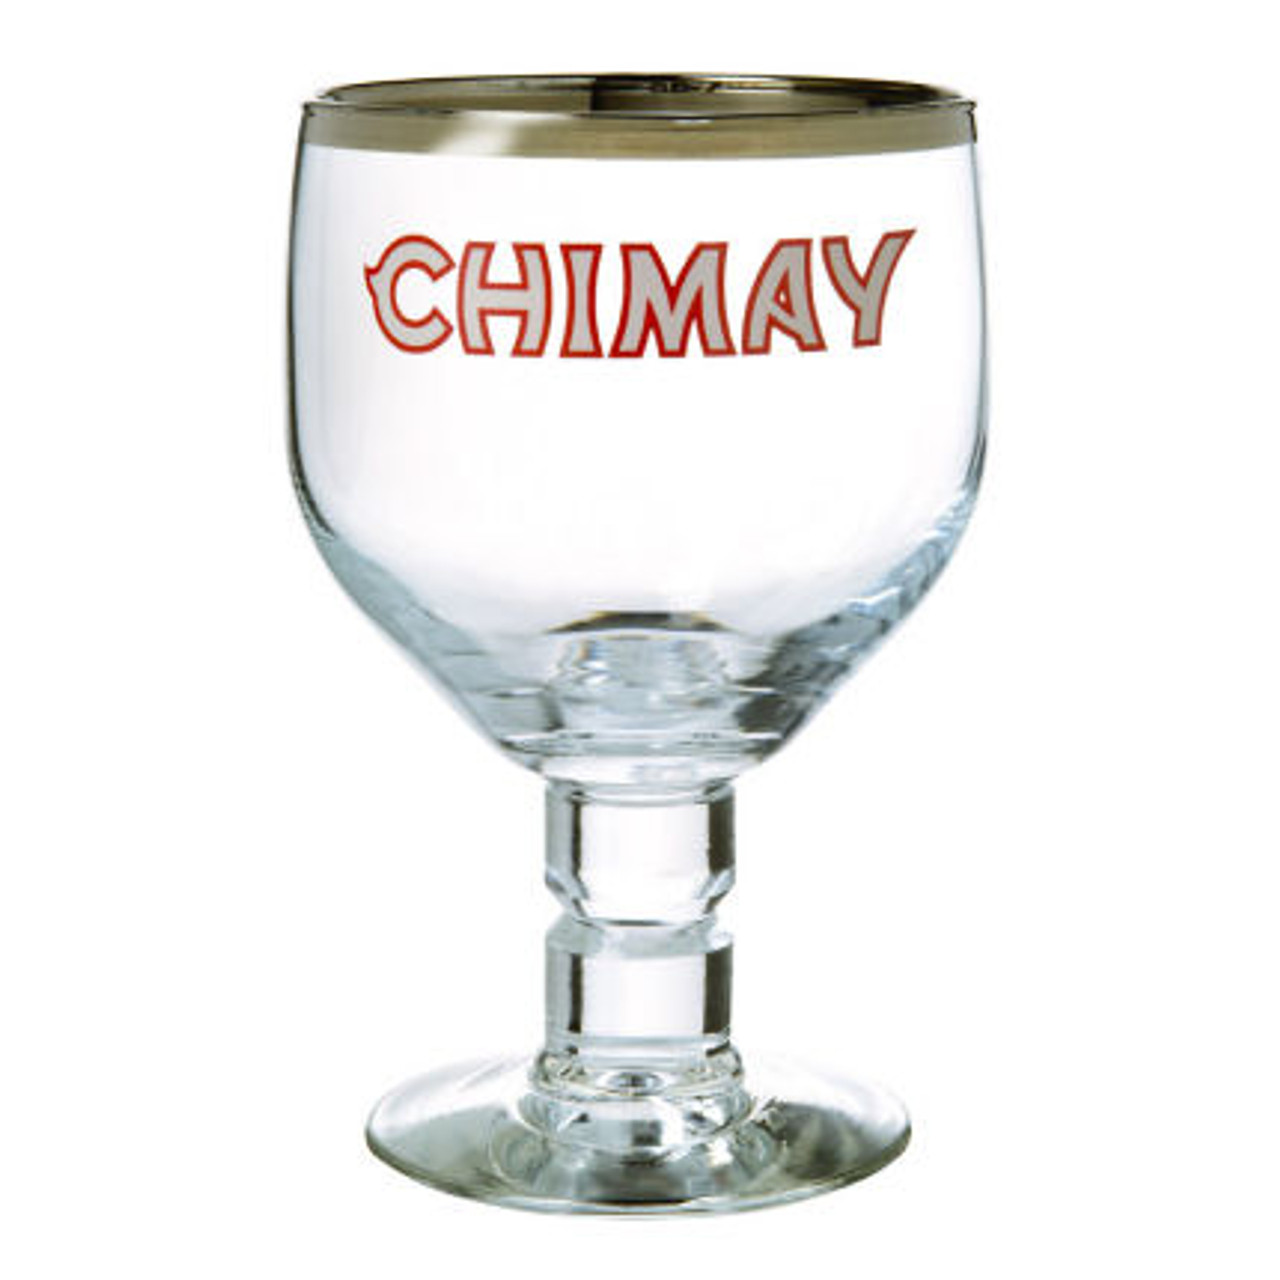 Chimay Belgian Goblet Glass approx 12oz